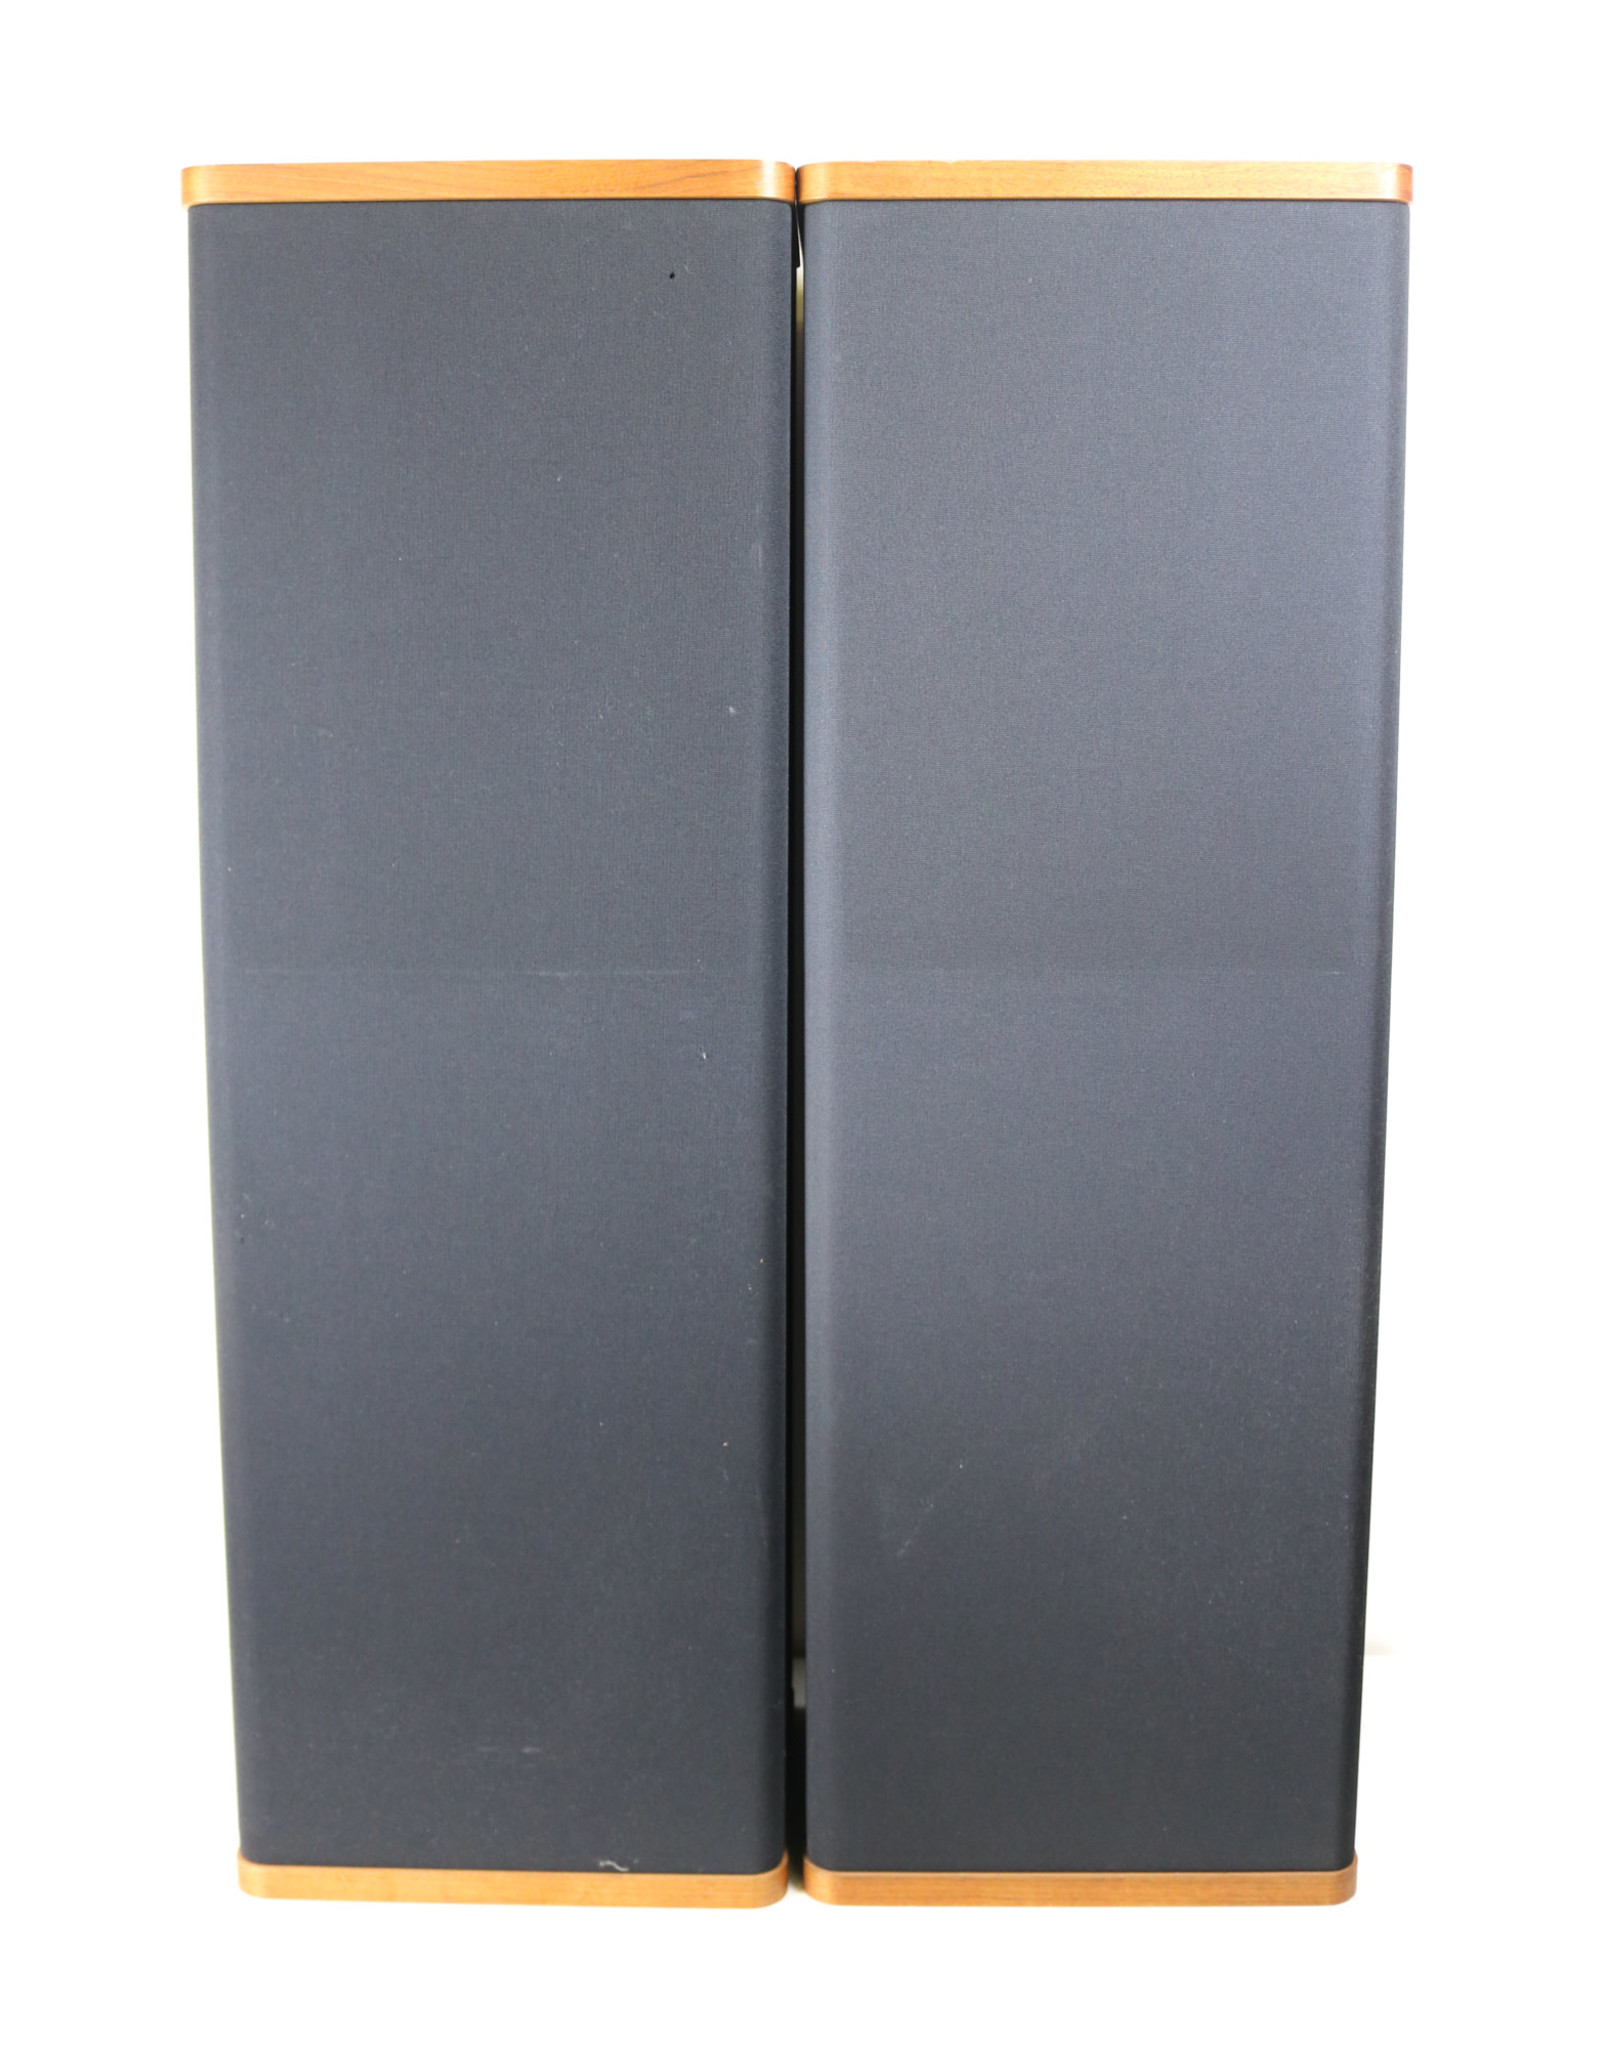 Vandersteen Vandersteen Model 1 Floorstanding Speakers USED